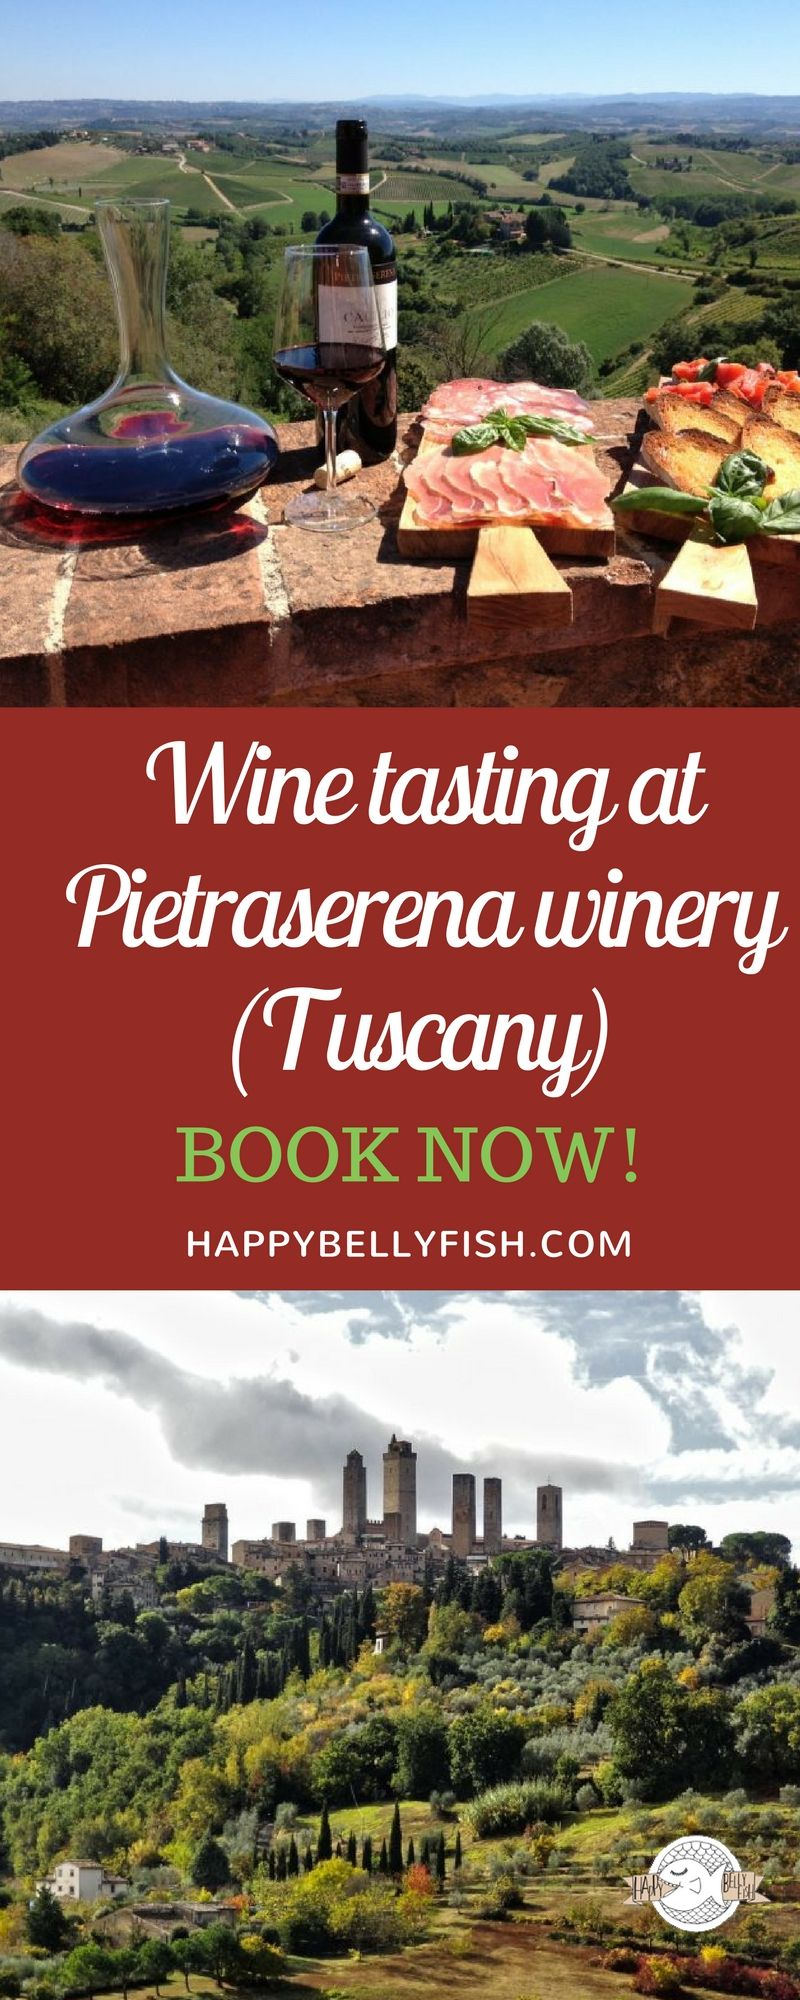 Tuscany Wine Tastings Cooking Classes Culinary Vacations Food Tours Tuscany Wine Tuscany Wine Tasting Italy Wine